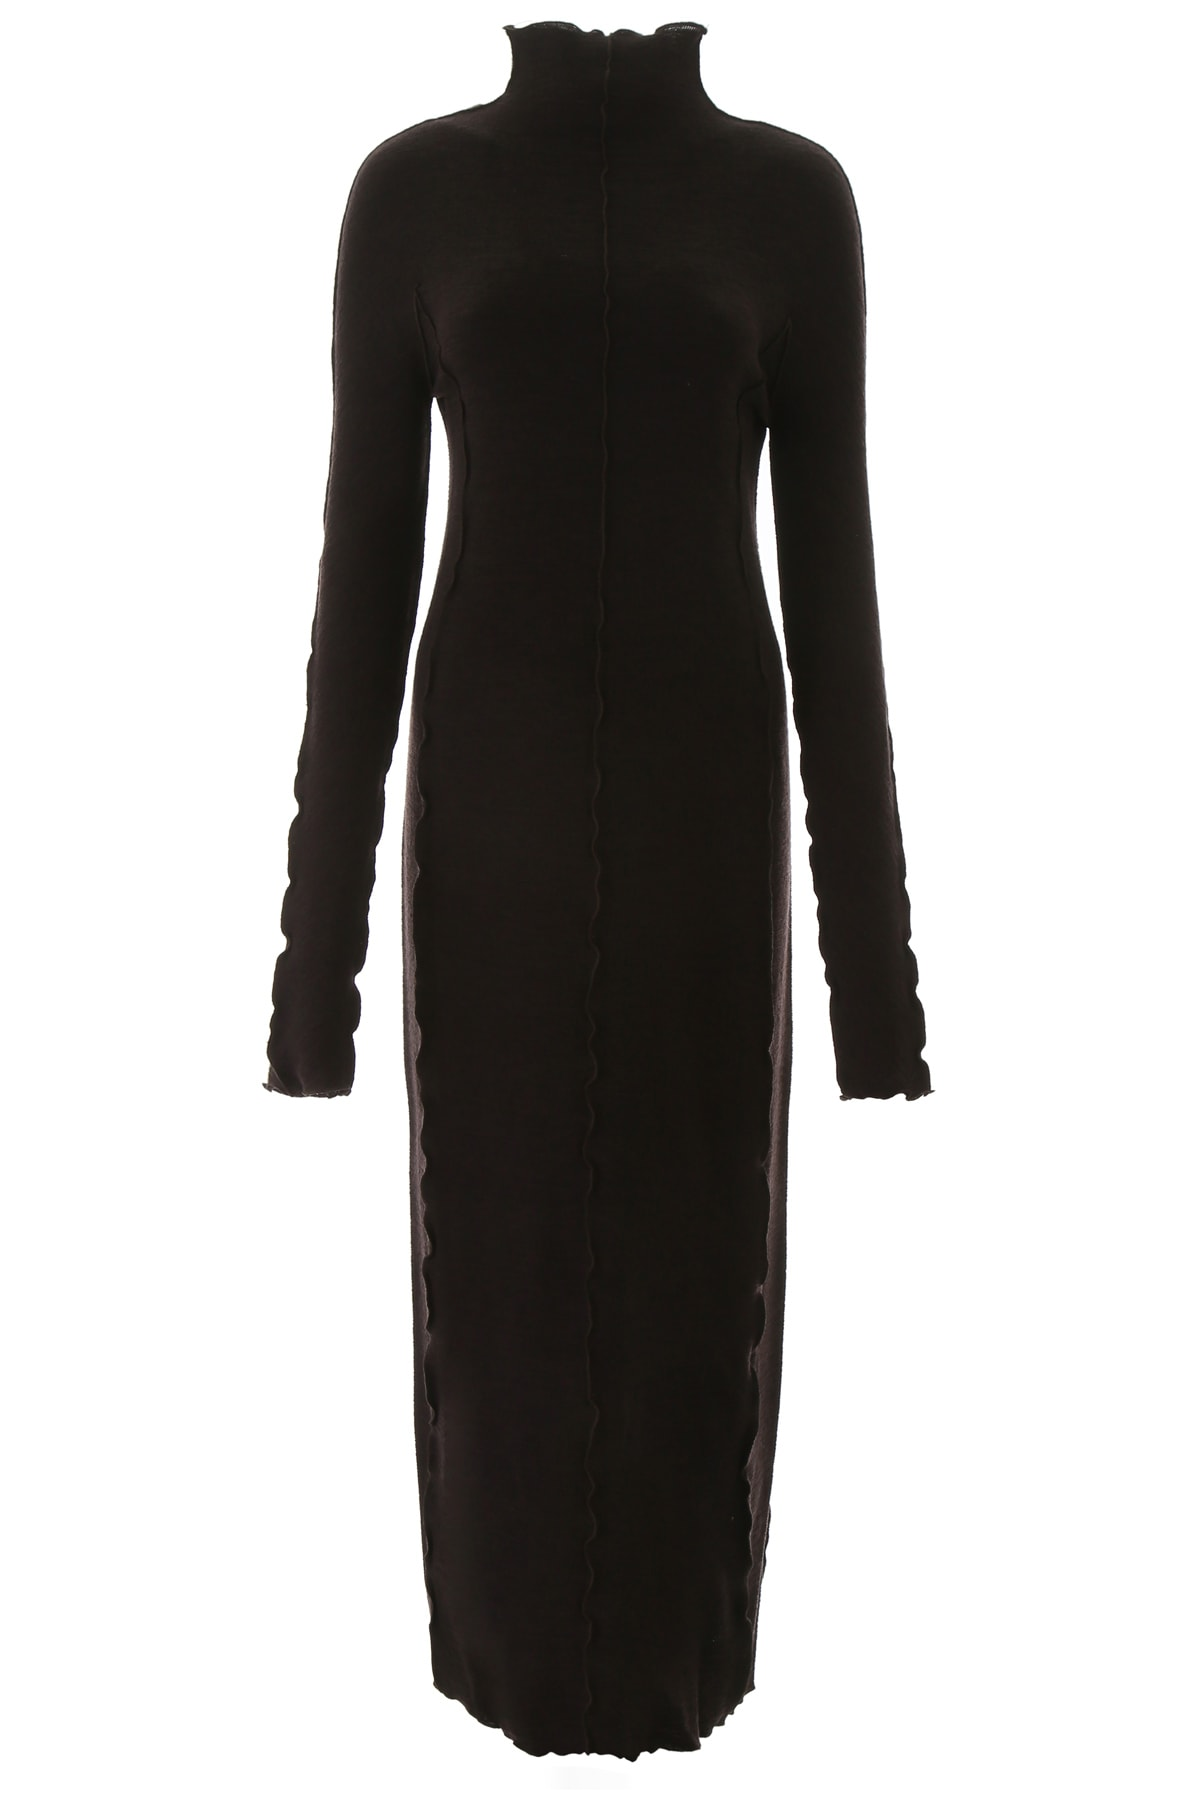 Jil Sander Dress With Seams